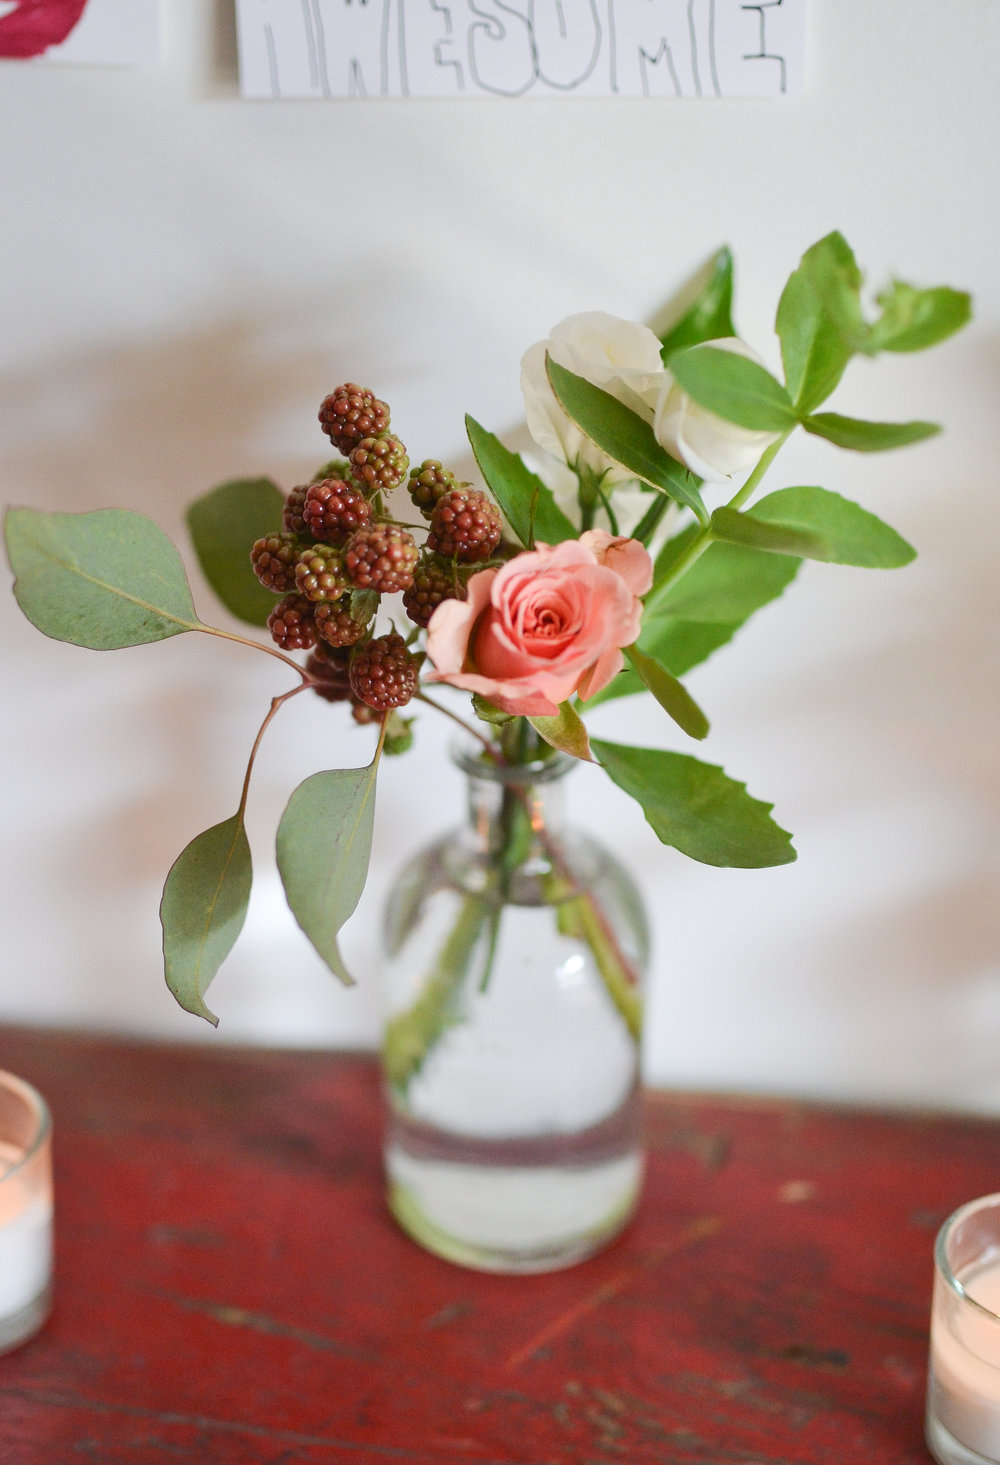 A simple and natural bud vase